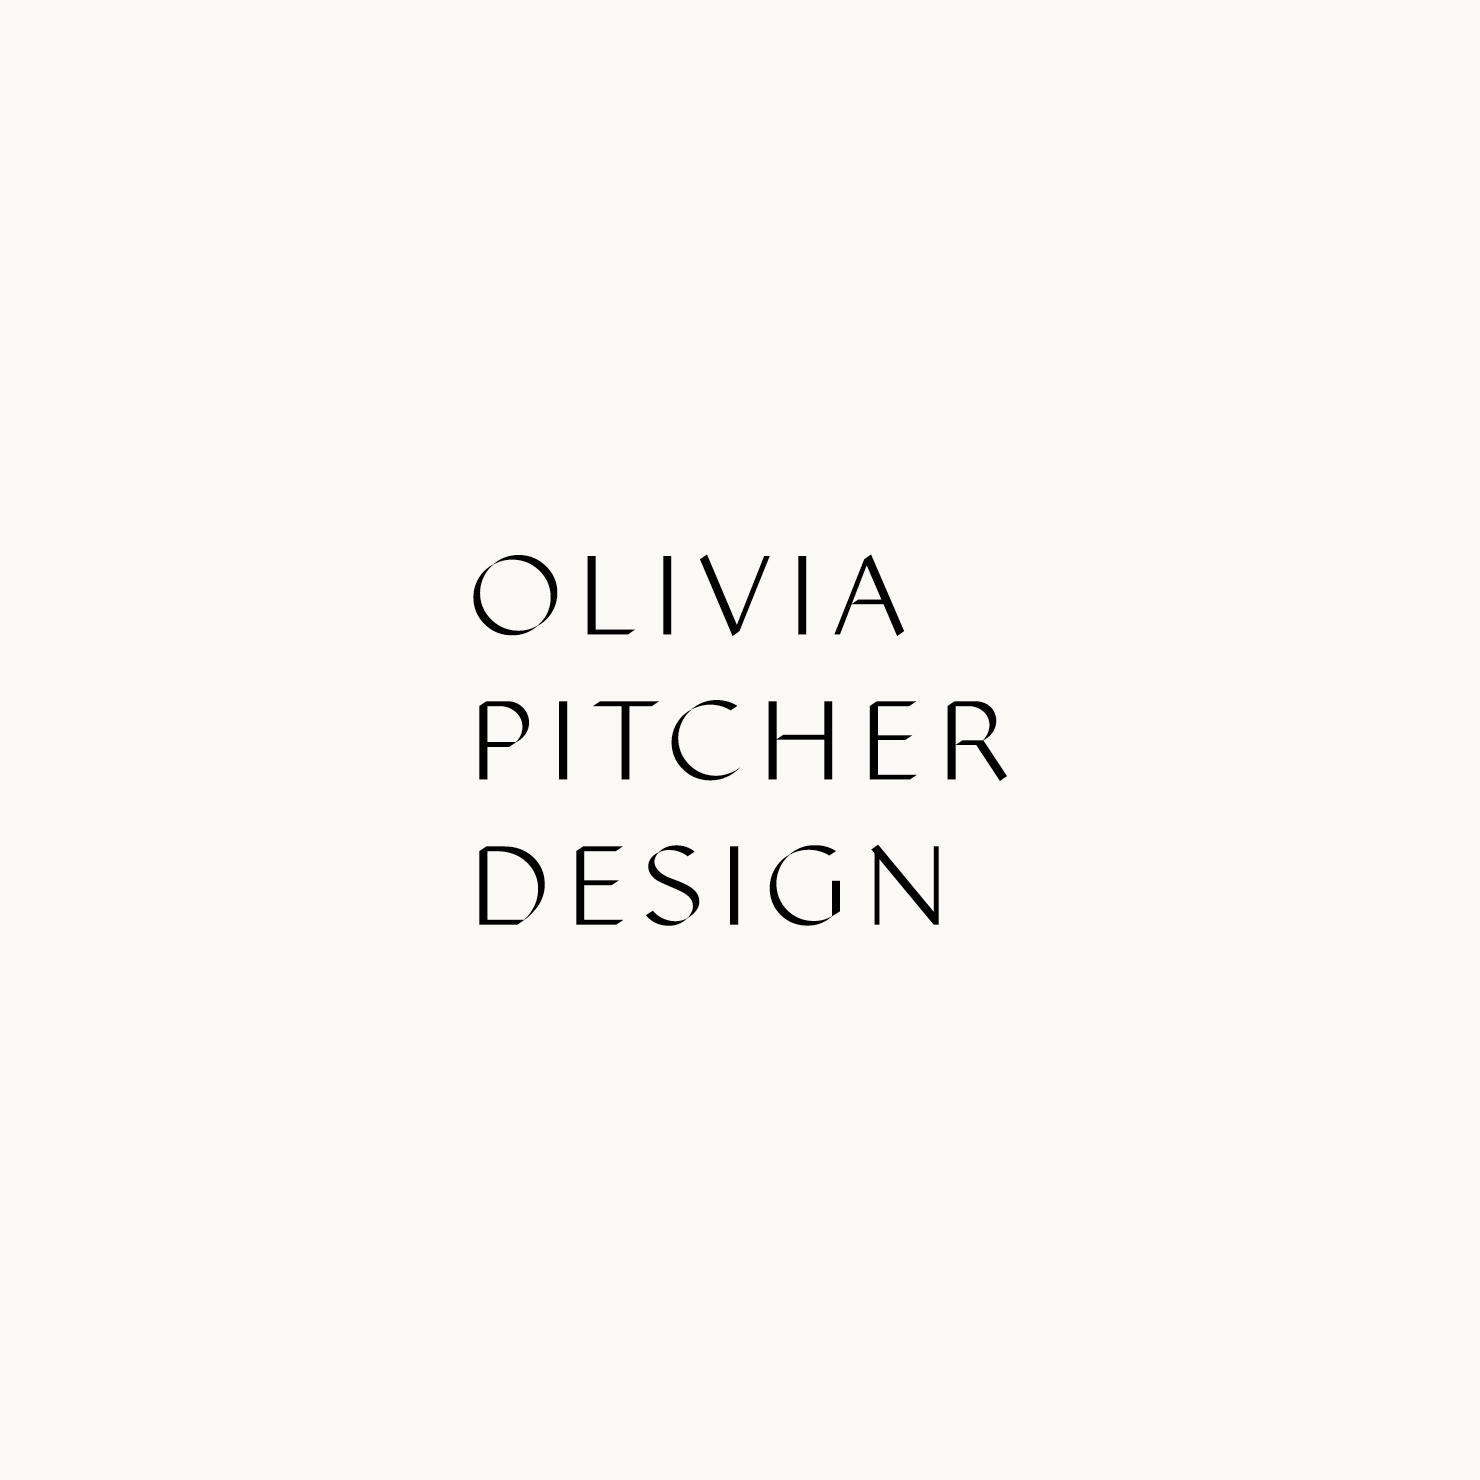 Olivia Pitcher Design